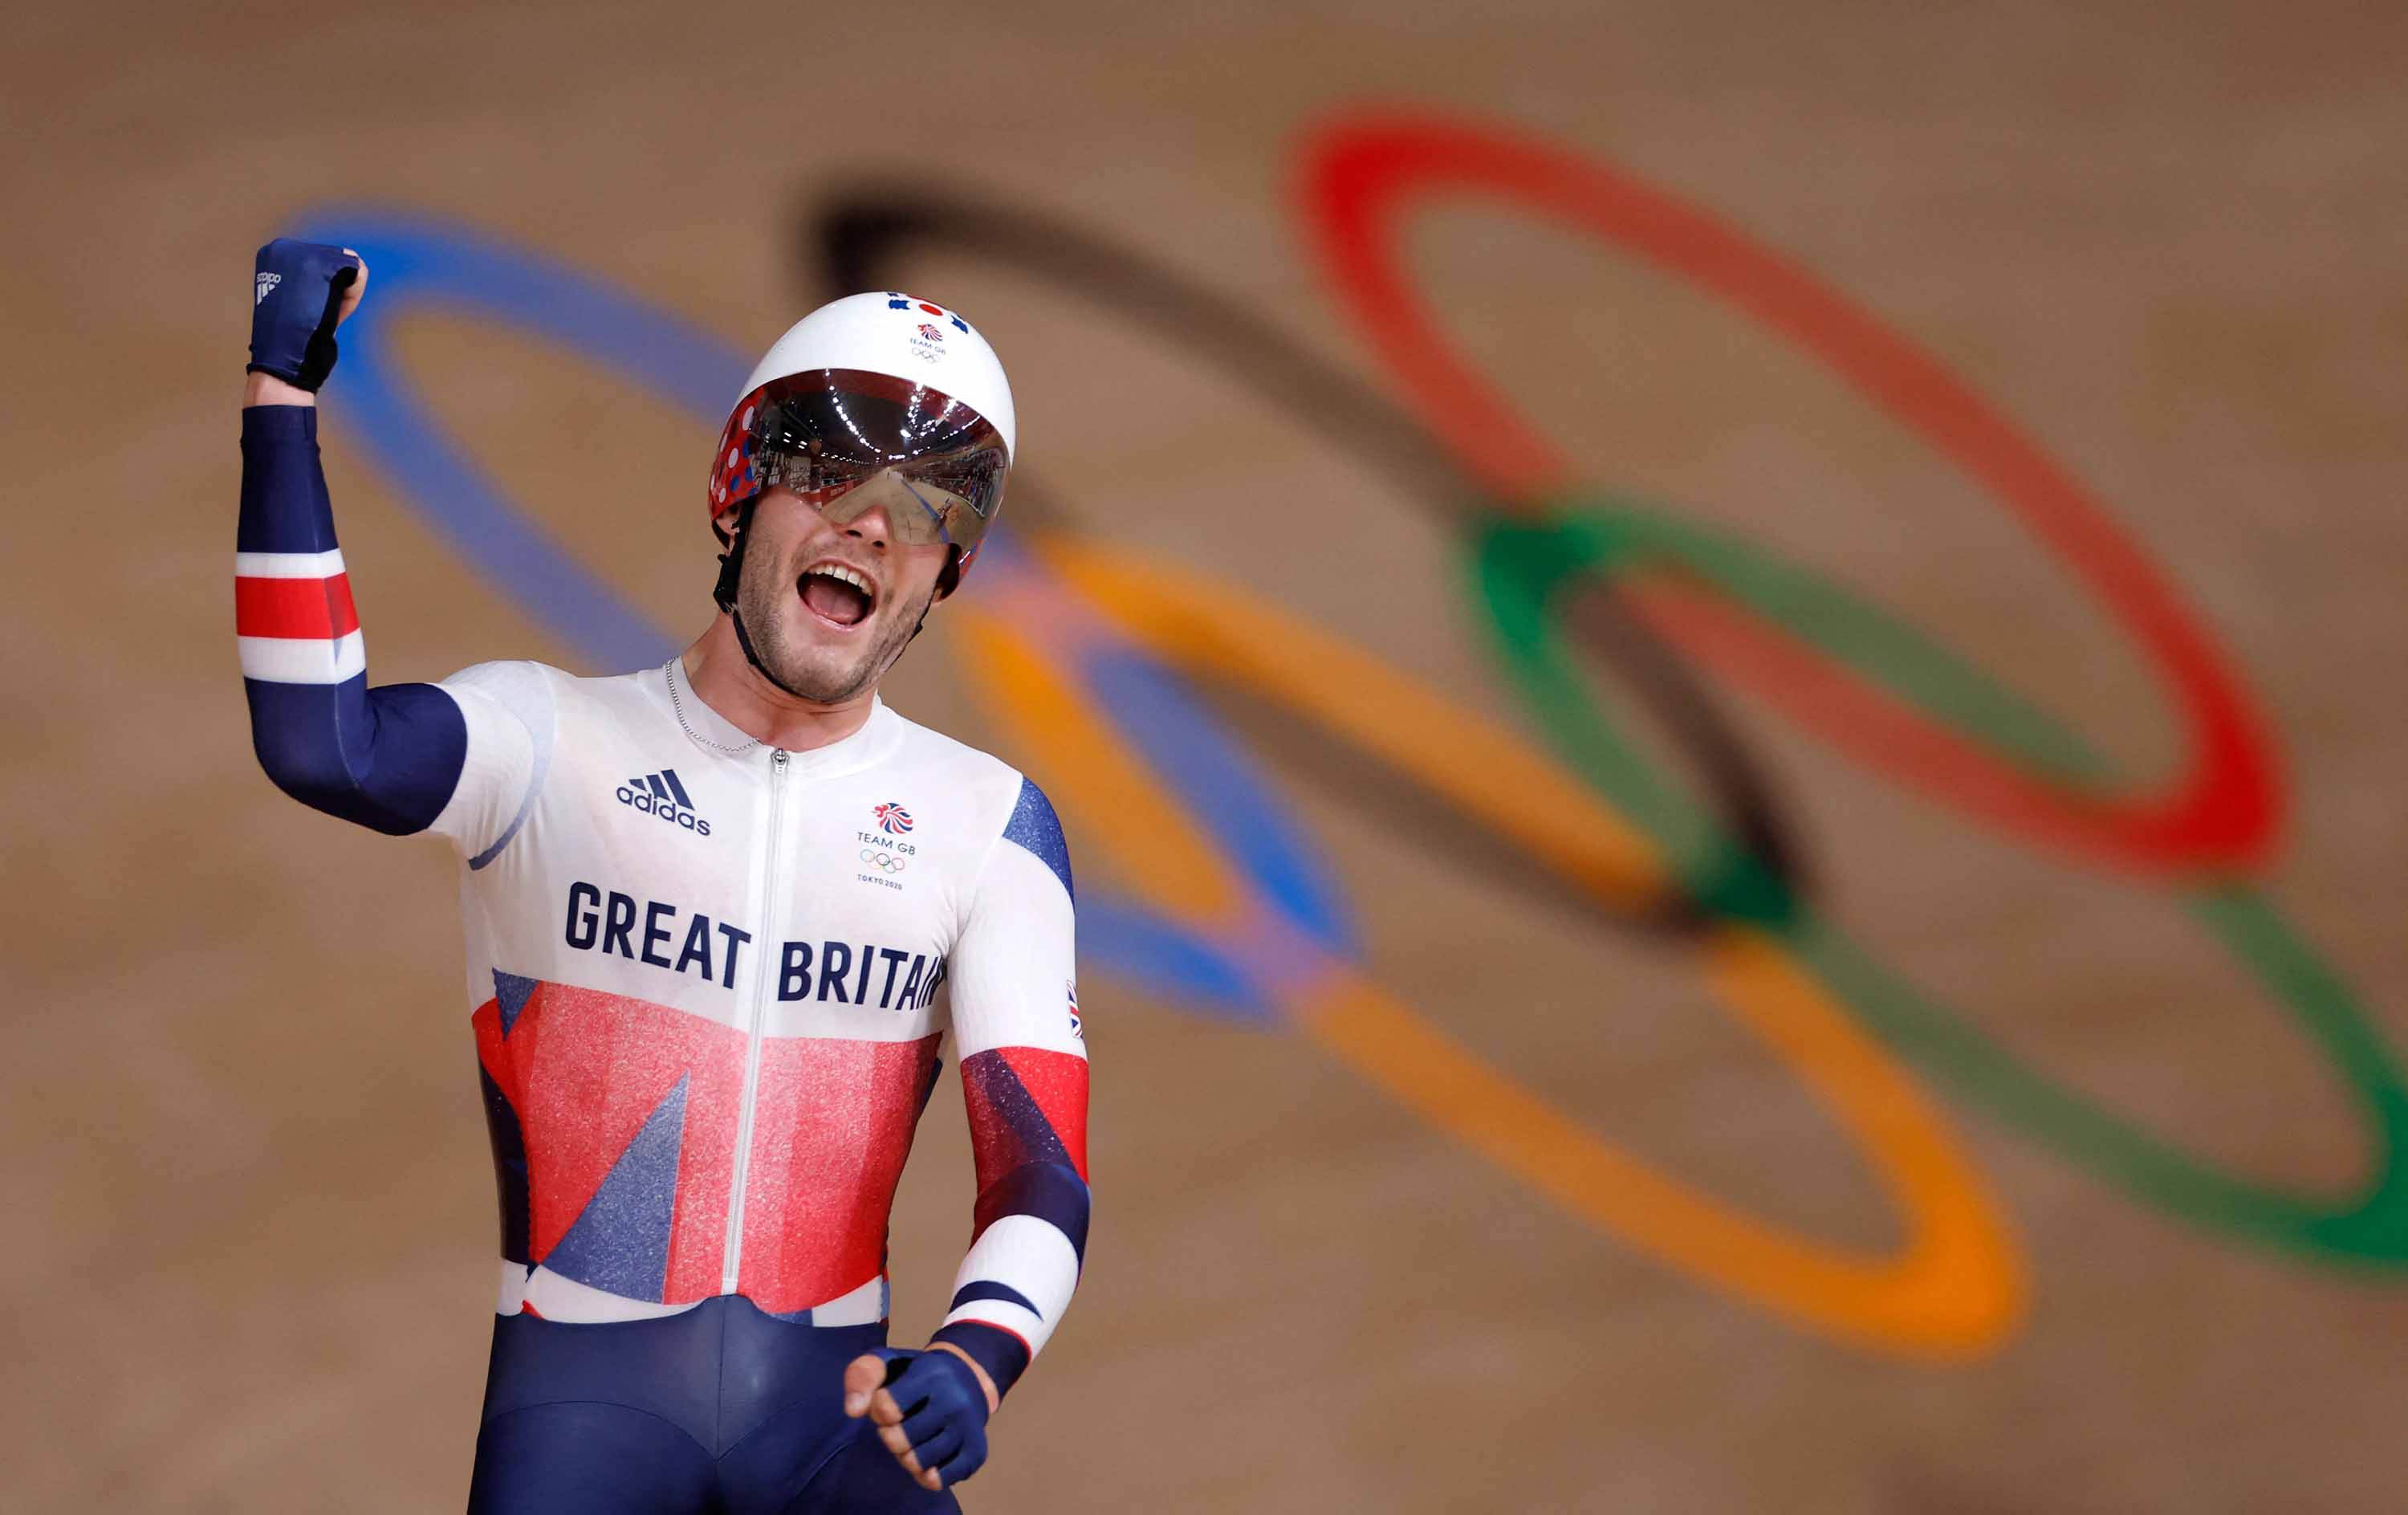 Matt Walls of Great Britain celebrates after winning the men's track cycling omnium points race on August 5.